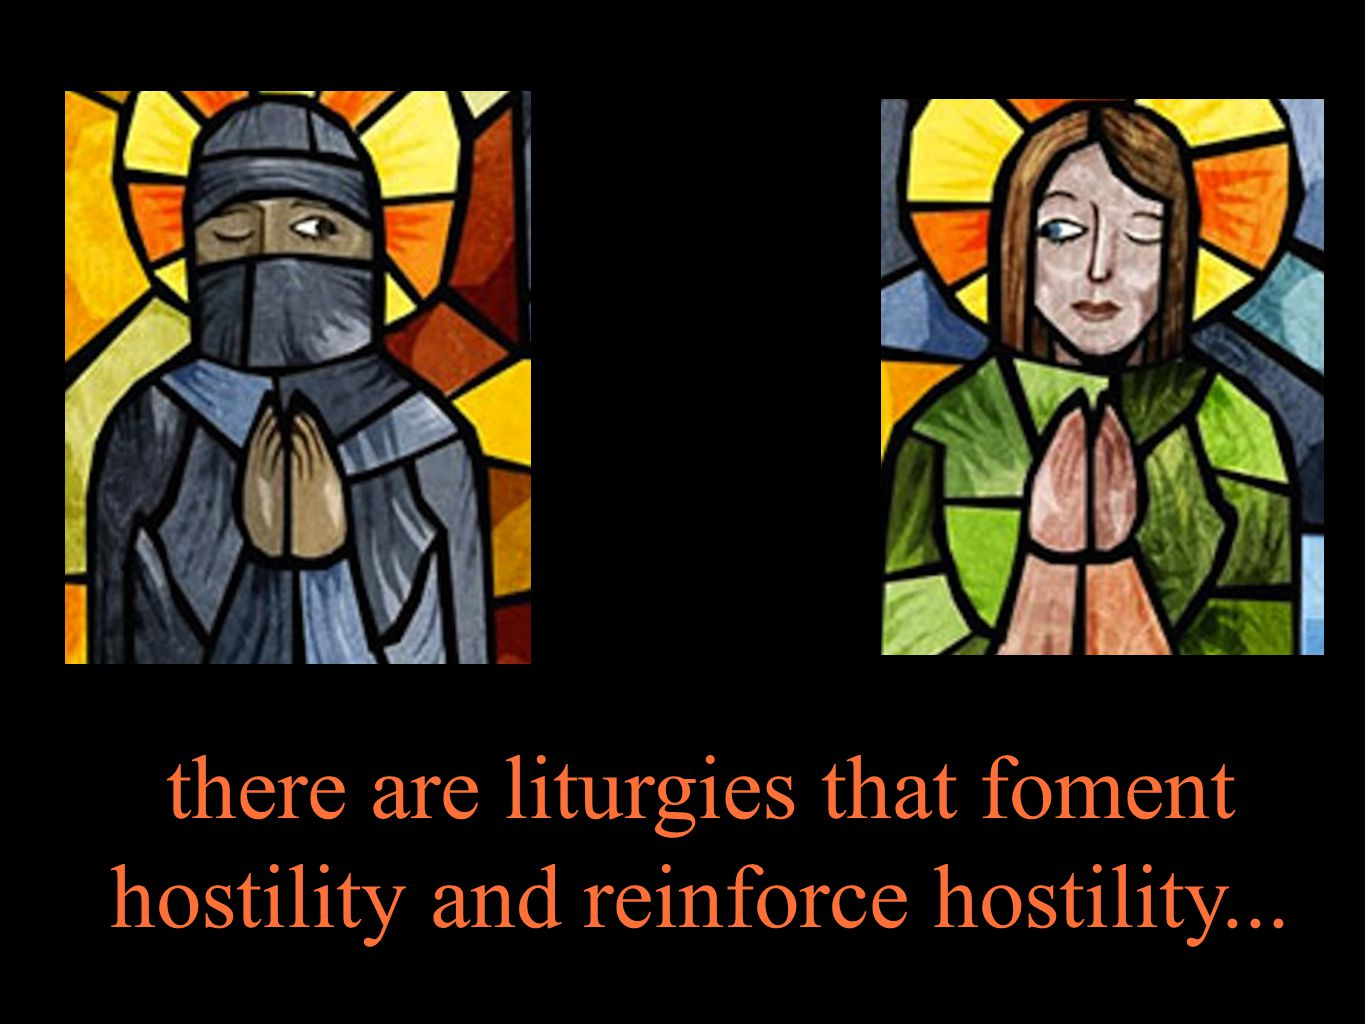 there are liturgies that foment hostility and reinforce hostility...